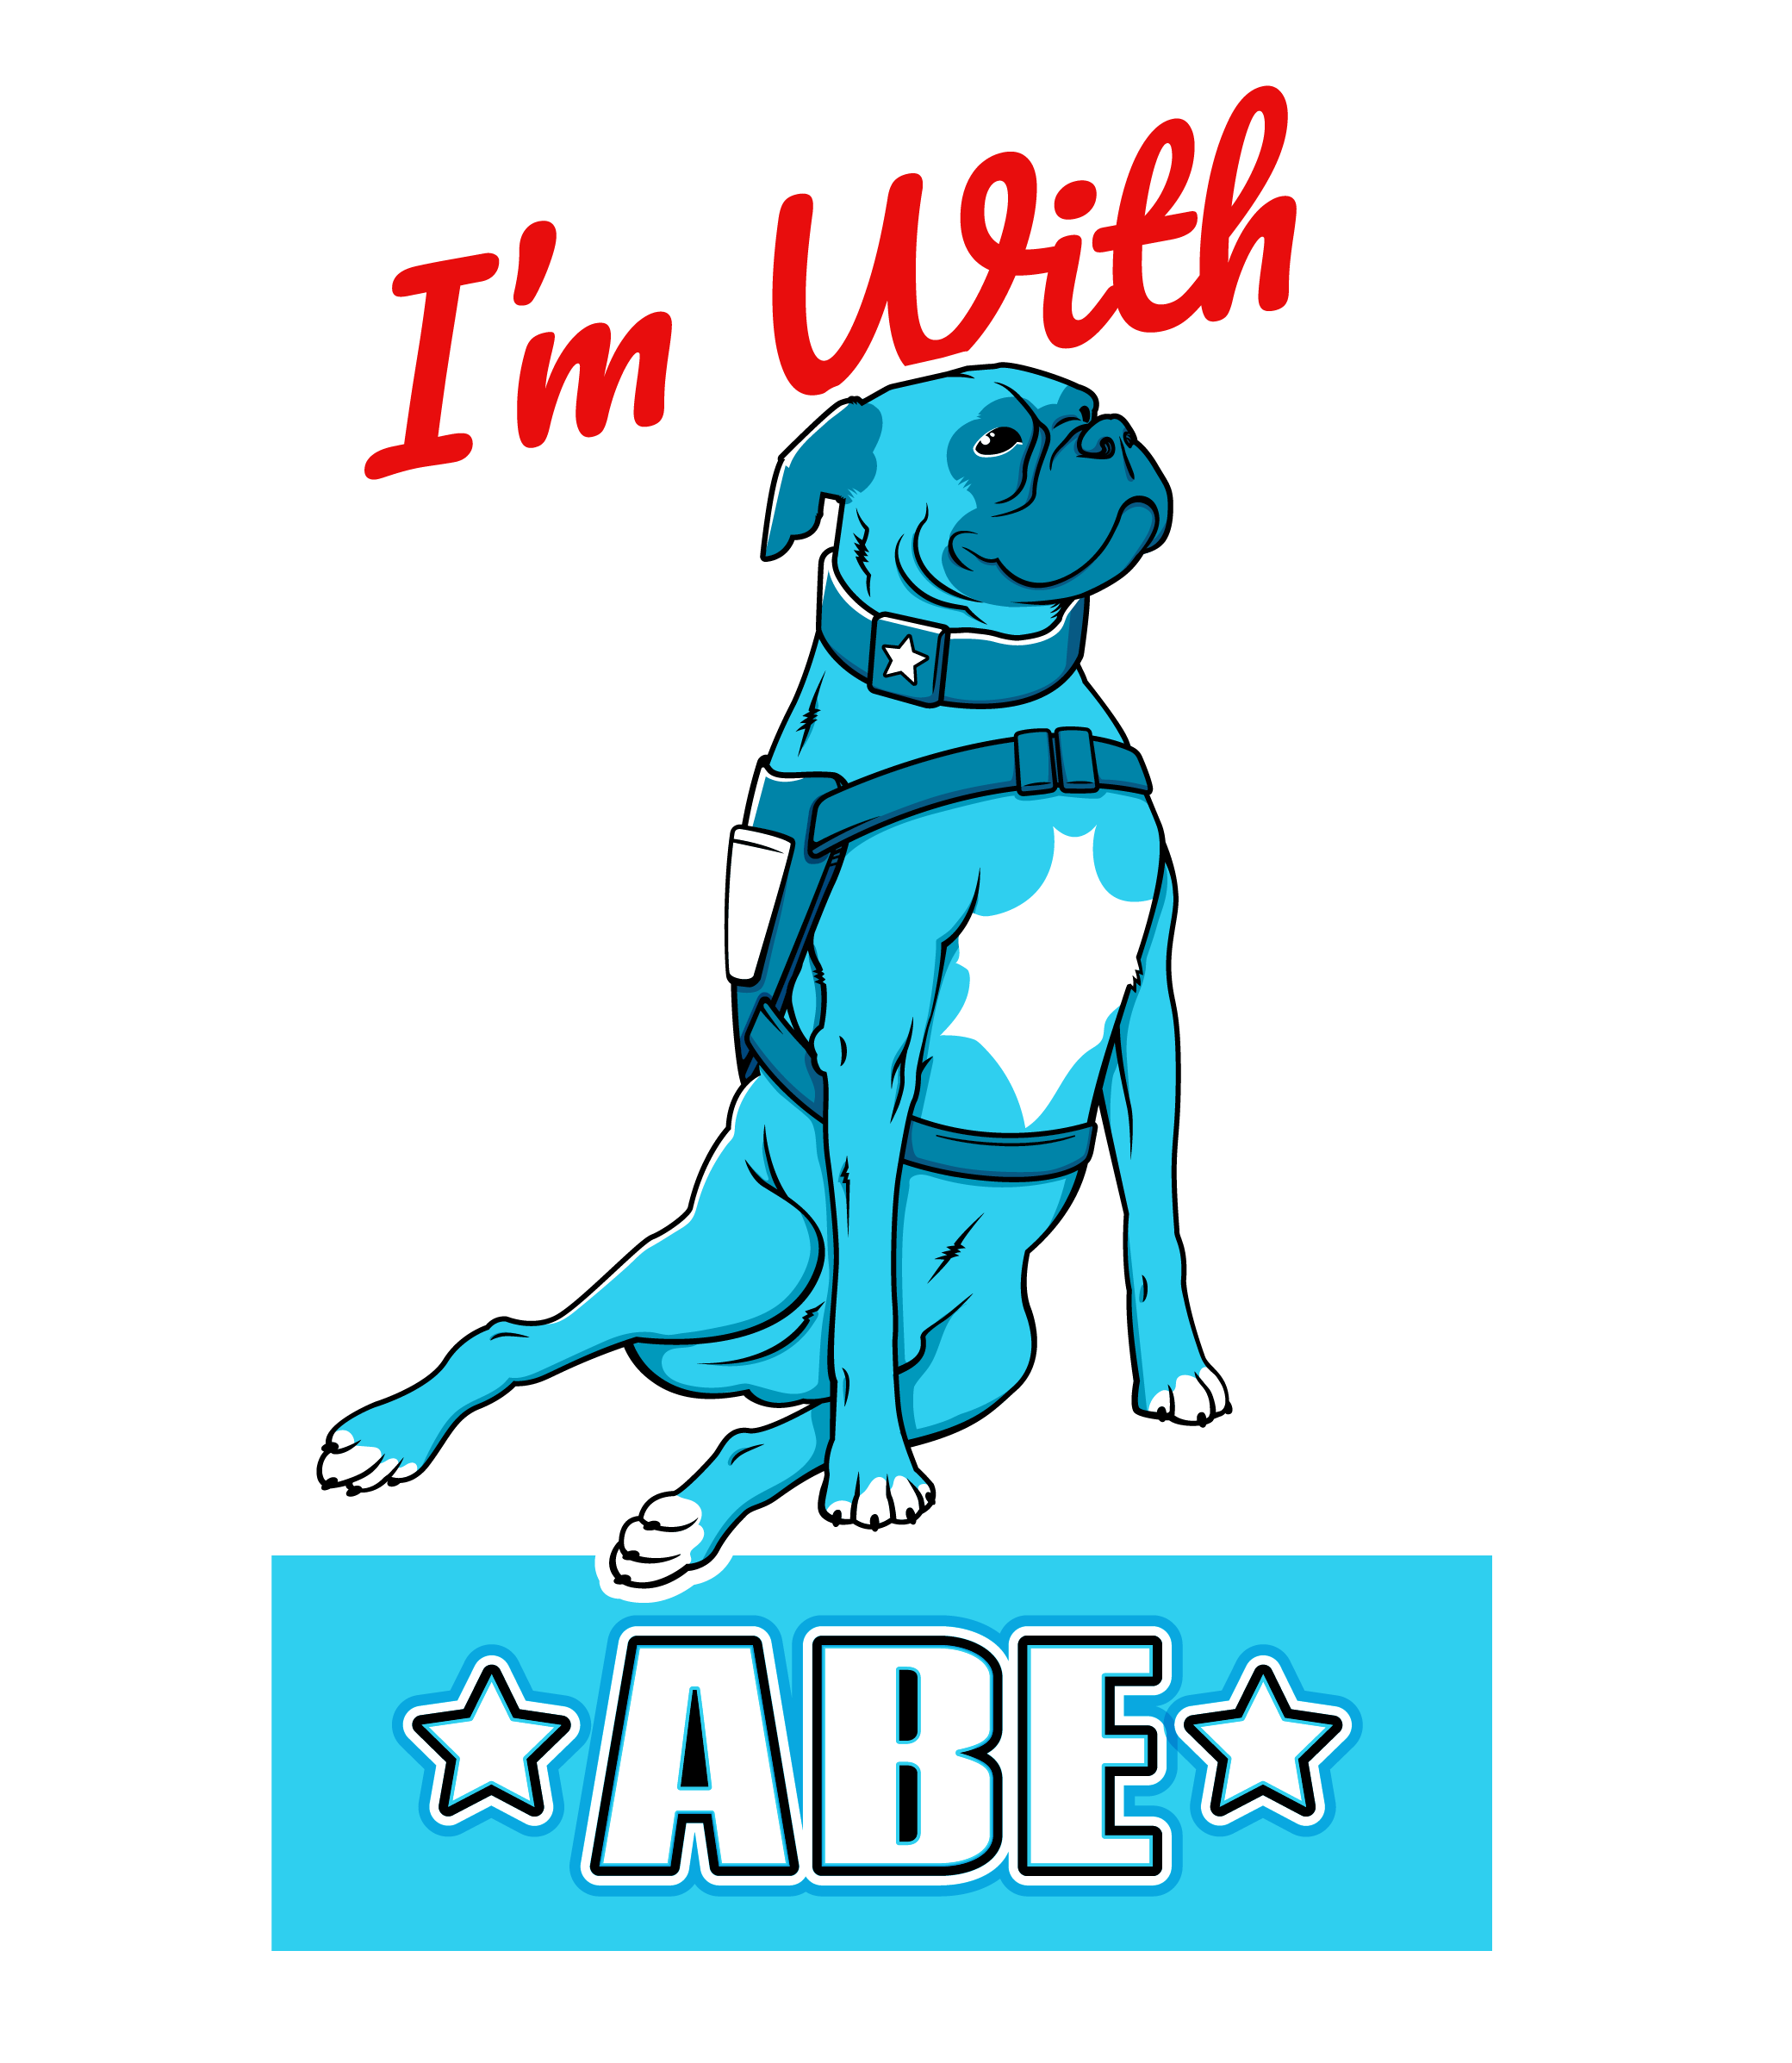 Veteran Companion Animal Services I'm With Abe campaign logo